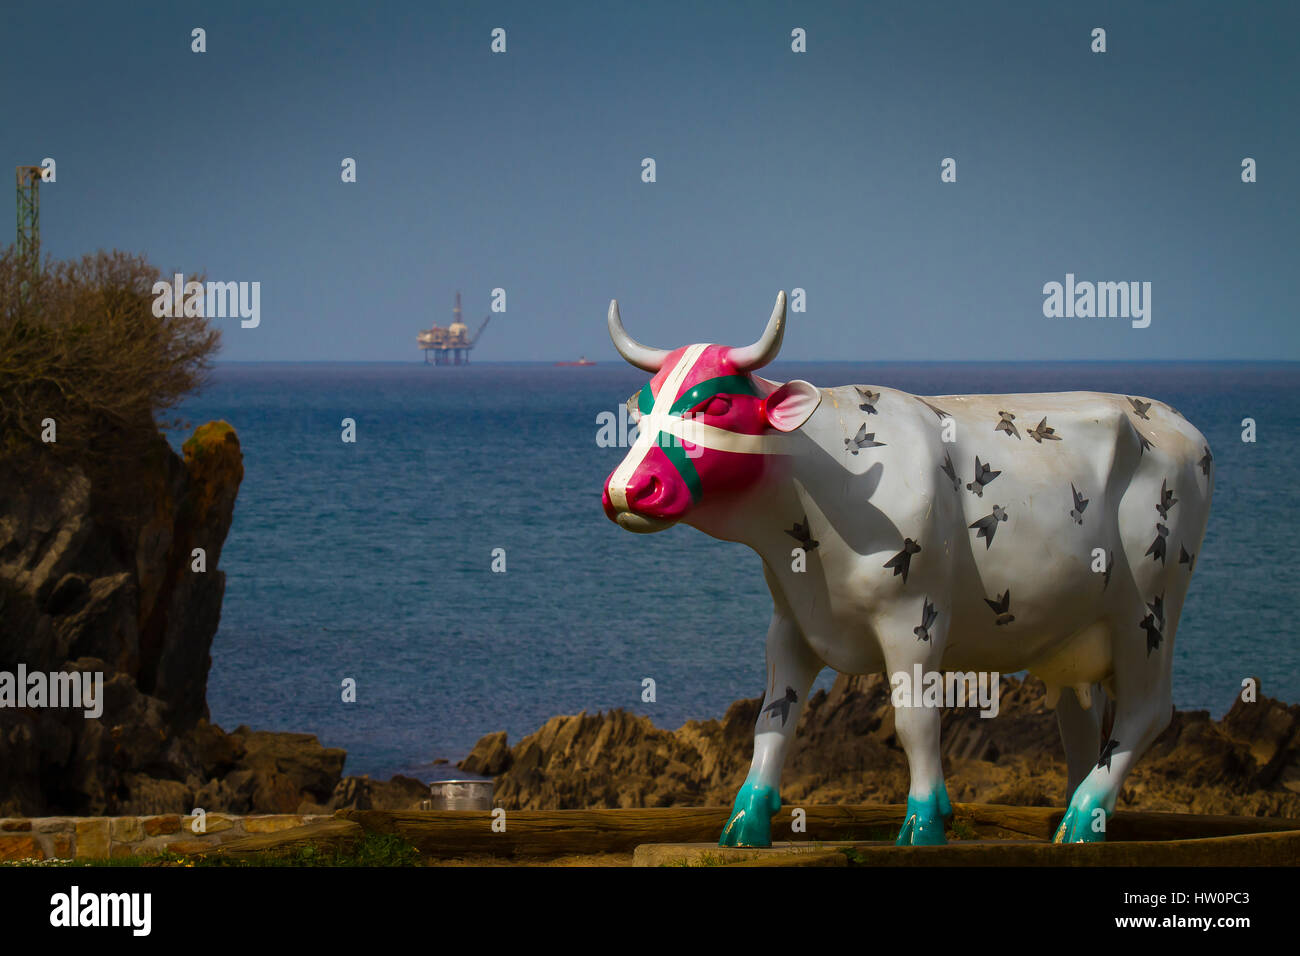 Painted cow and oil rig. - Stock Image